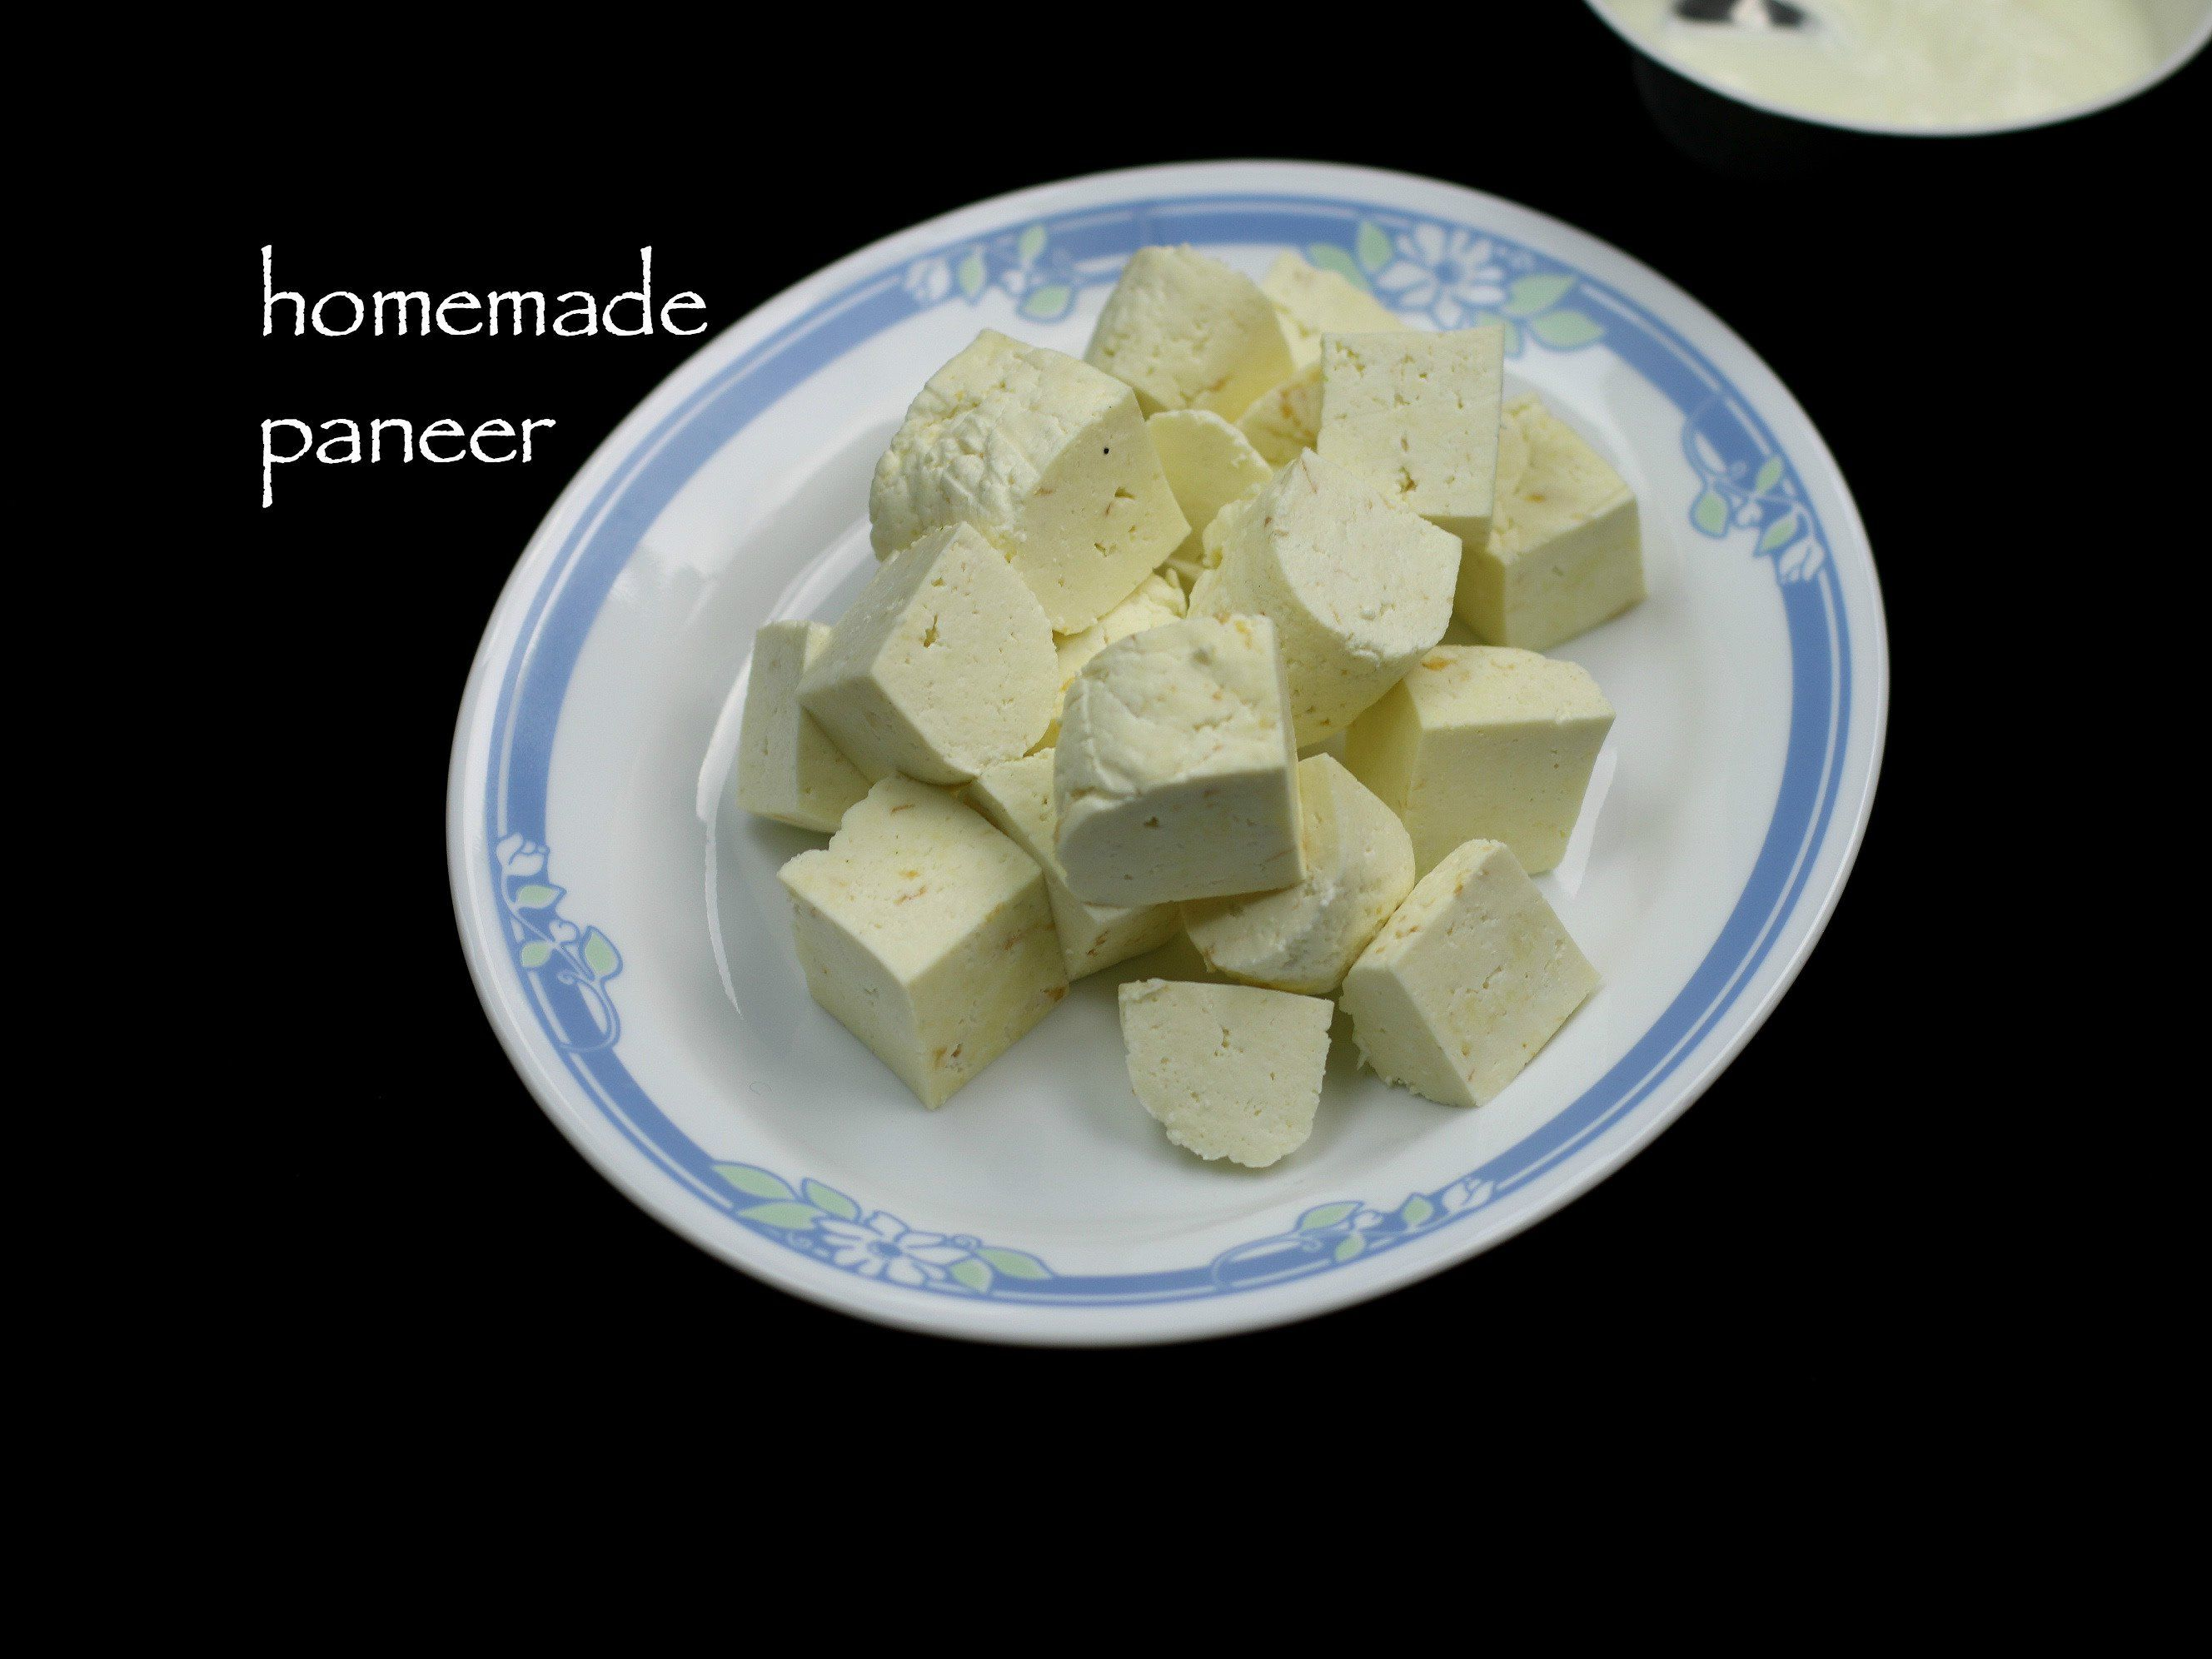 paneer recipe homemade paneer recipe cottage cheese recipe